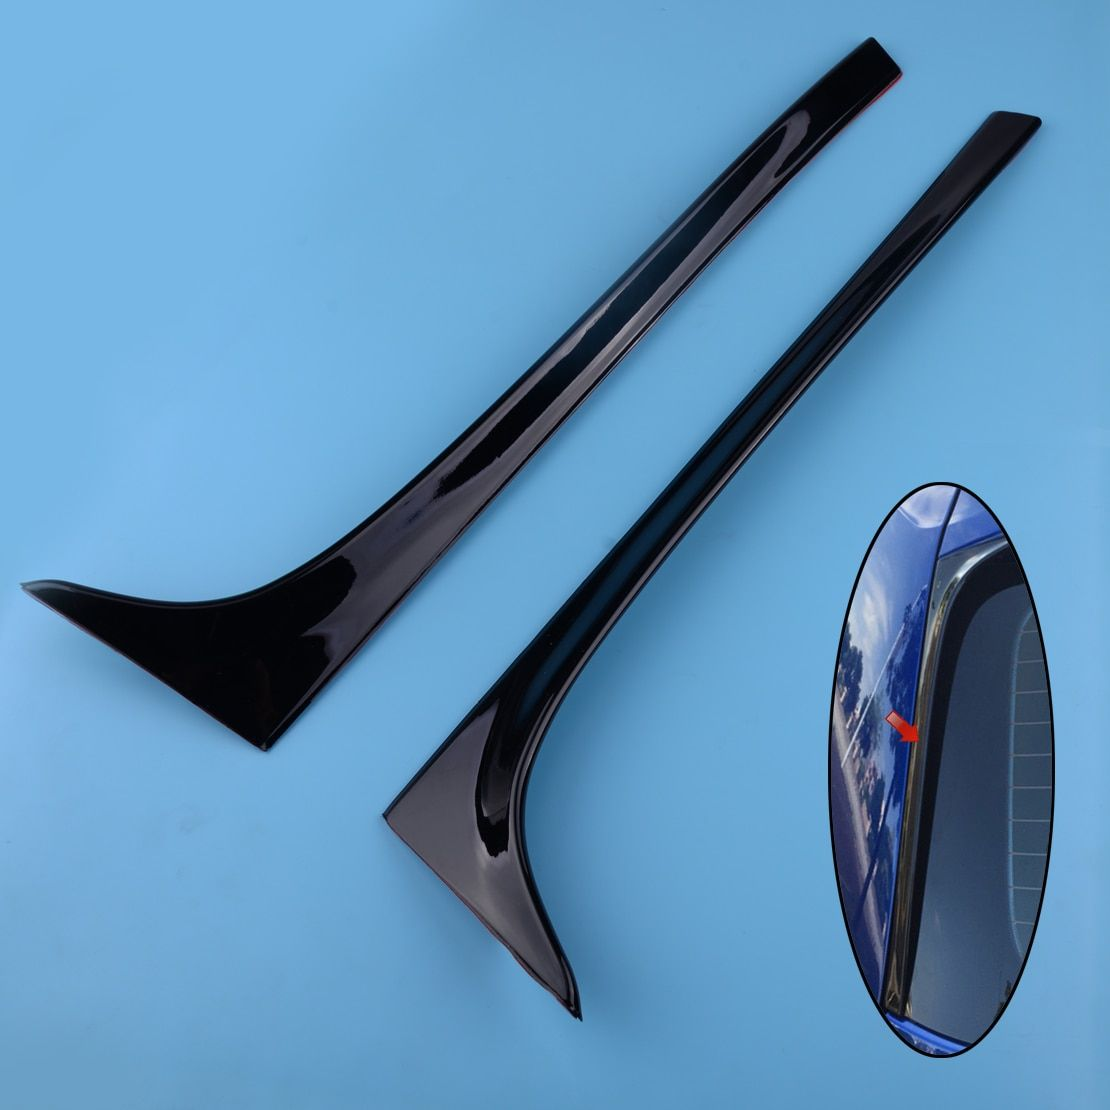 beler 2Pcs Car Black Plastic Rear Window Side Spoiler Wing Lip Cover Trim Sticker Fit For VW GOLF MK7 MK7.5 R GTE GTD